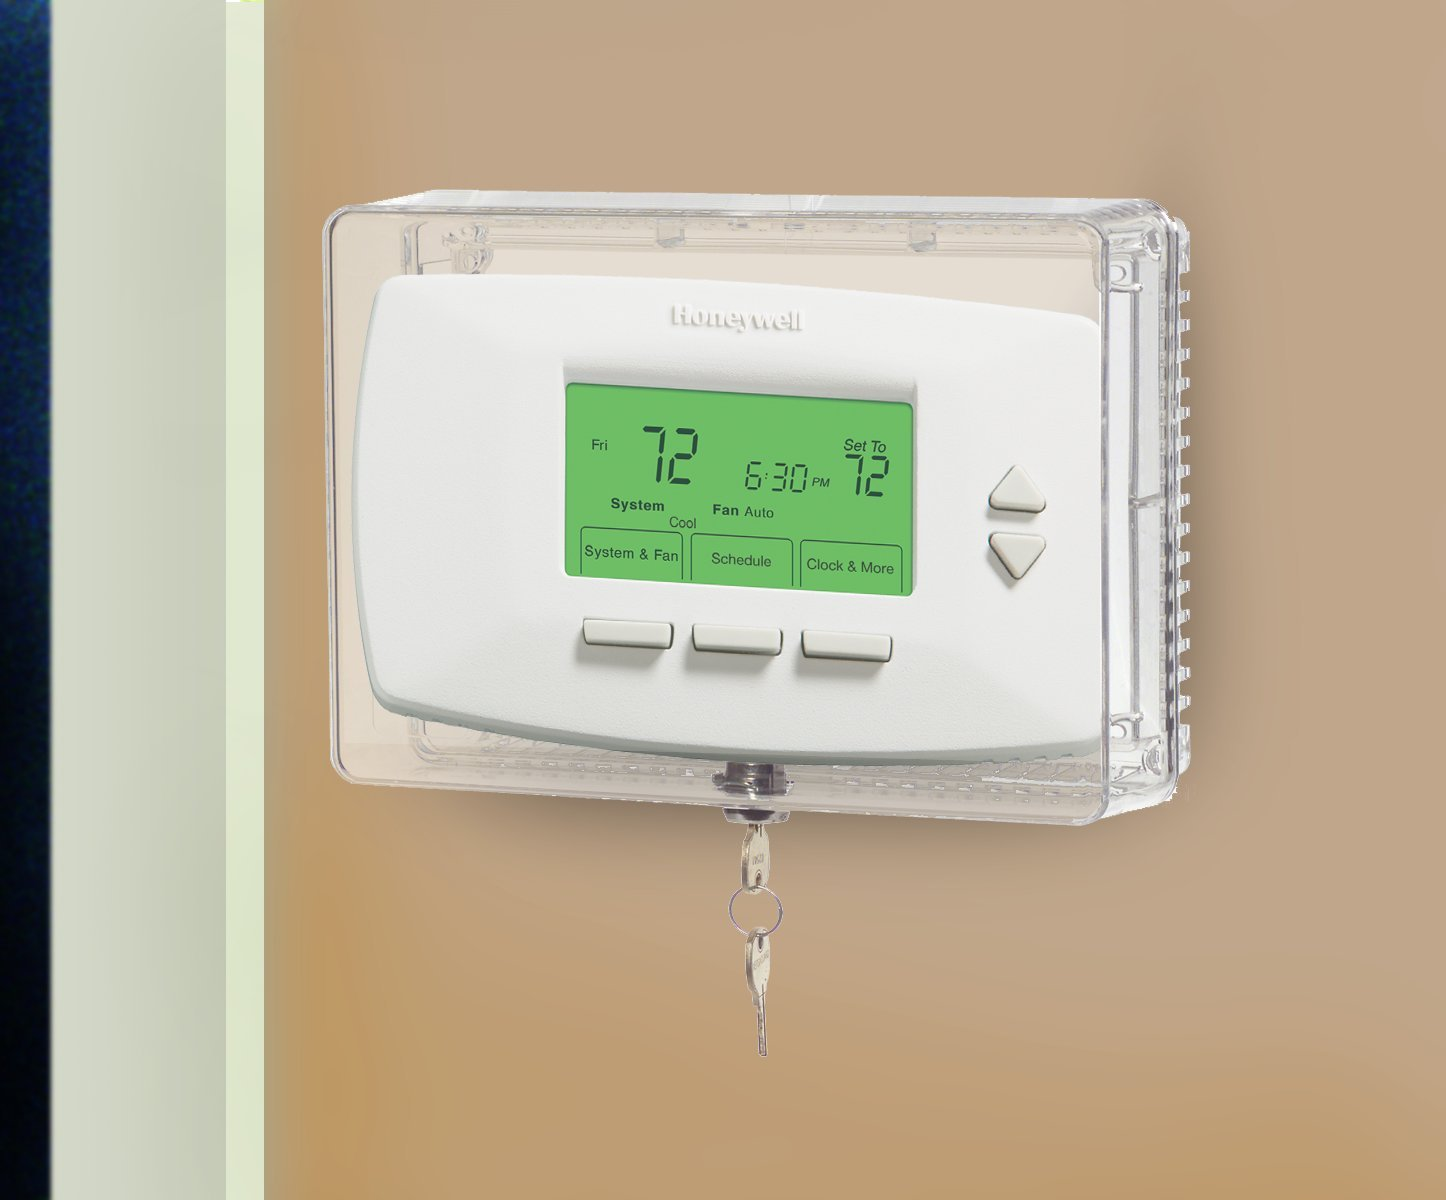 Honeywell CG511A1000/C Medium Thermostat Guard with Inner Shelf to Prevent Tampering by Honeywell